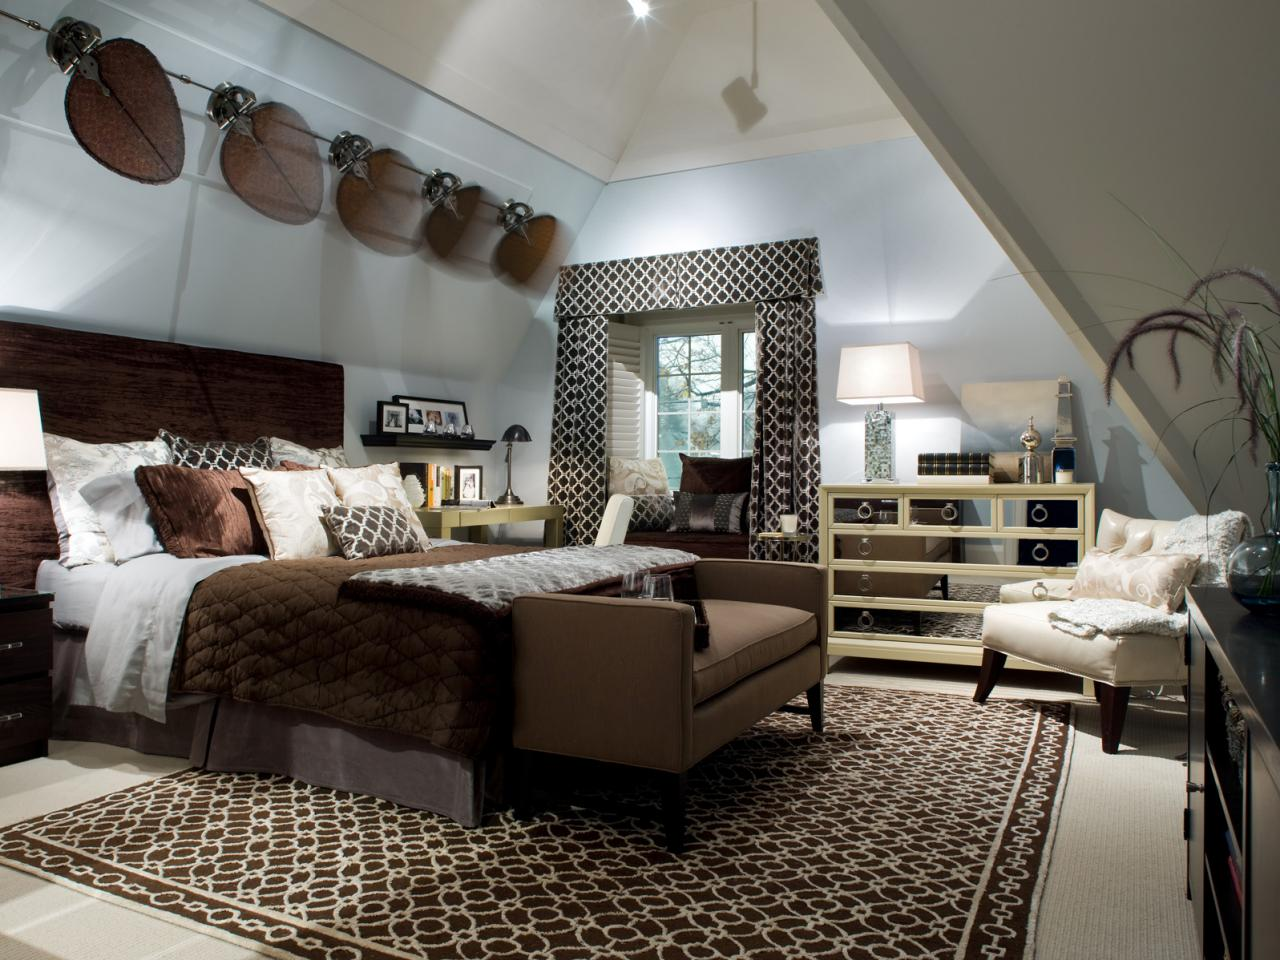 10 bedroom retreats from candice olson bedrooms